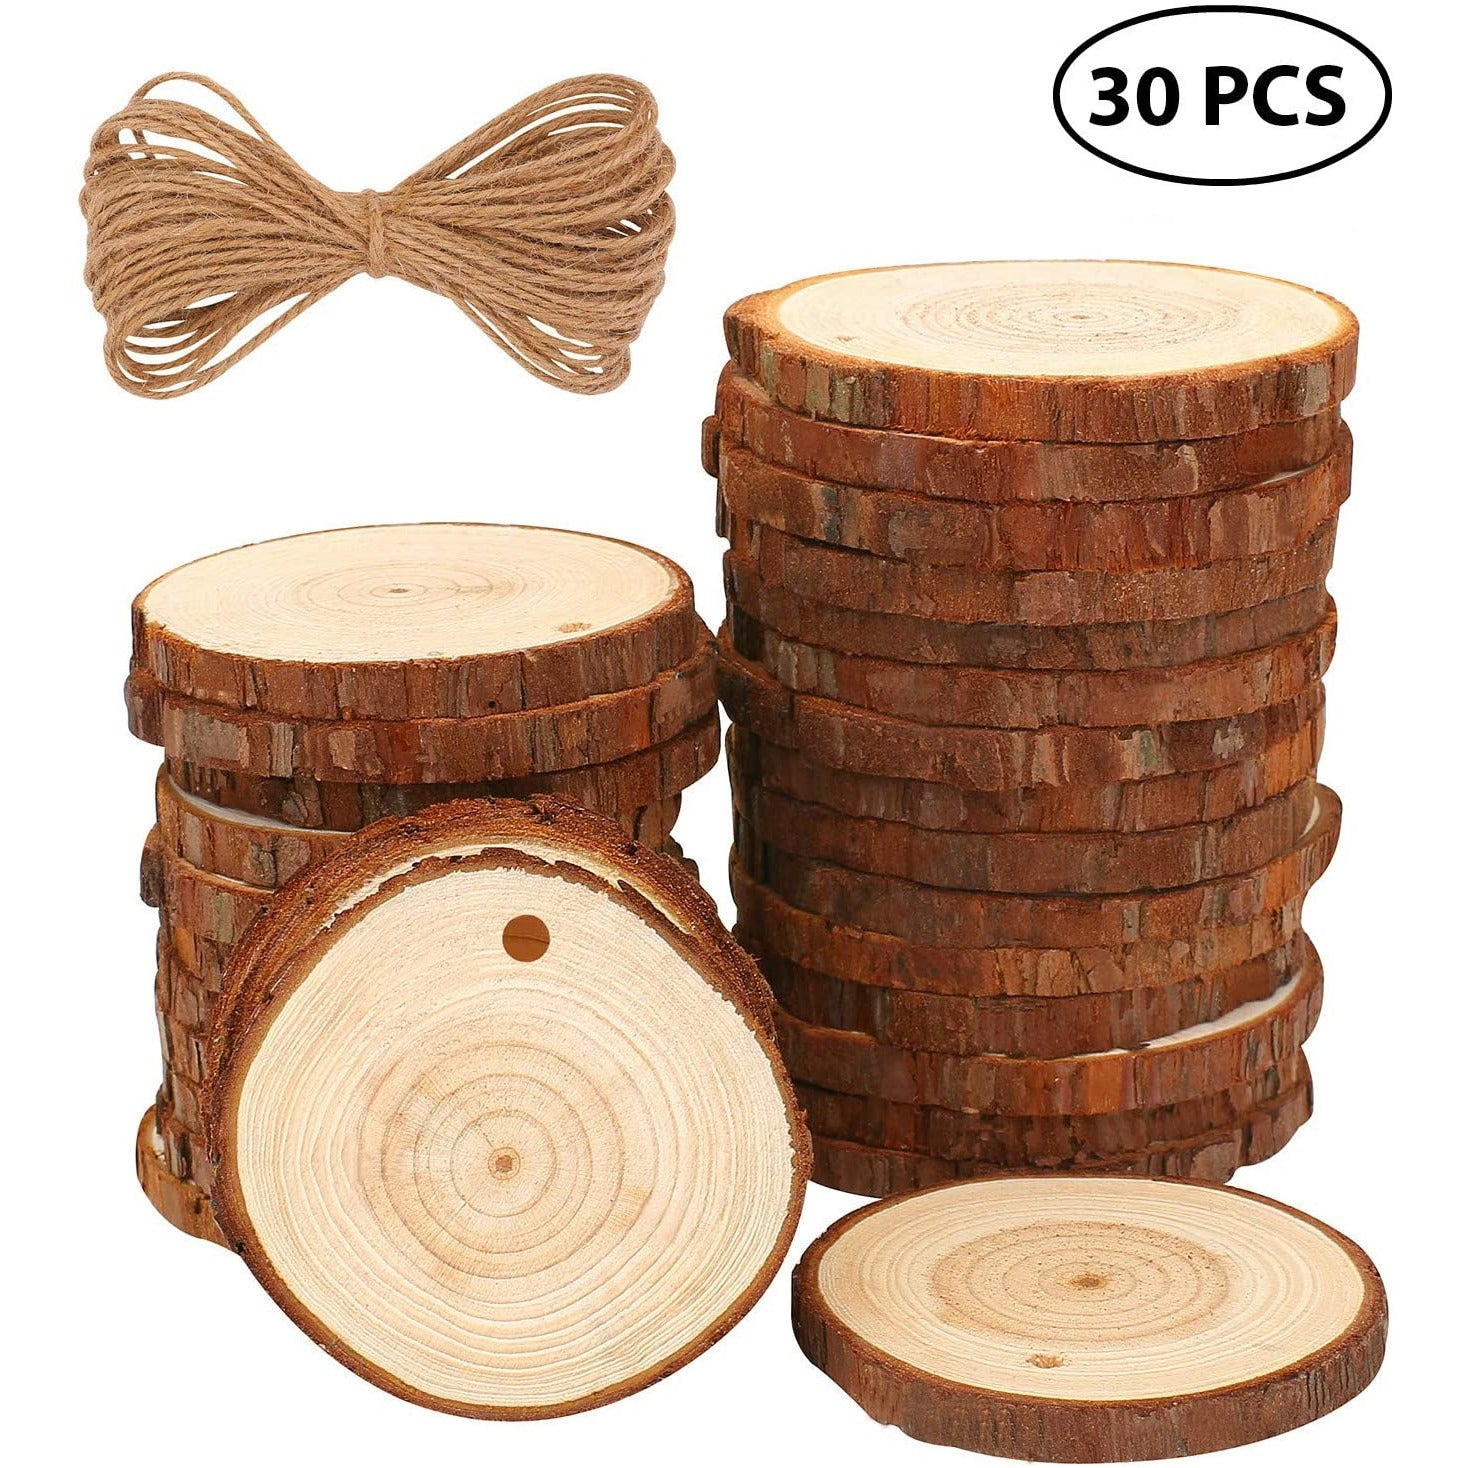 Natural Wood Slices 30 Pcs 6-7cm Drilled Hole Unfinished Log Wooden Circles for DIY Crafts Wedding Decorations Christmas Ornaments